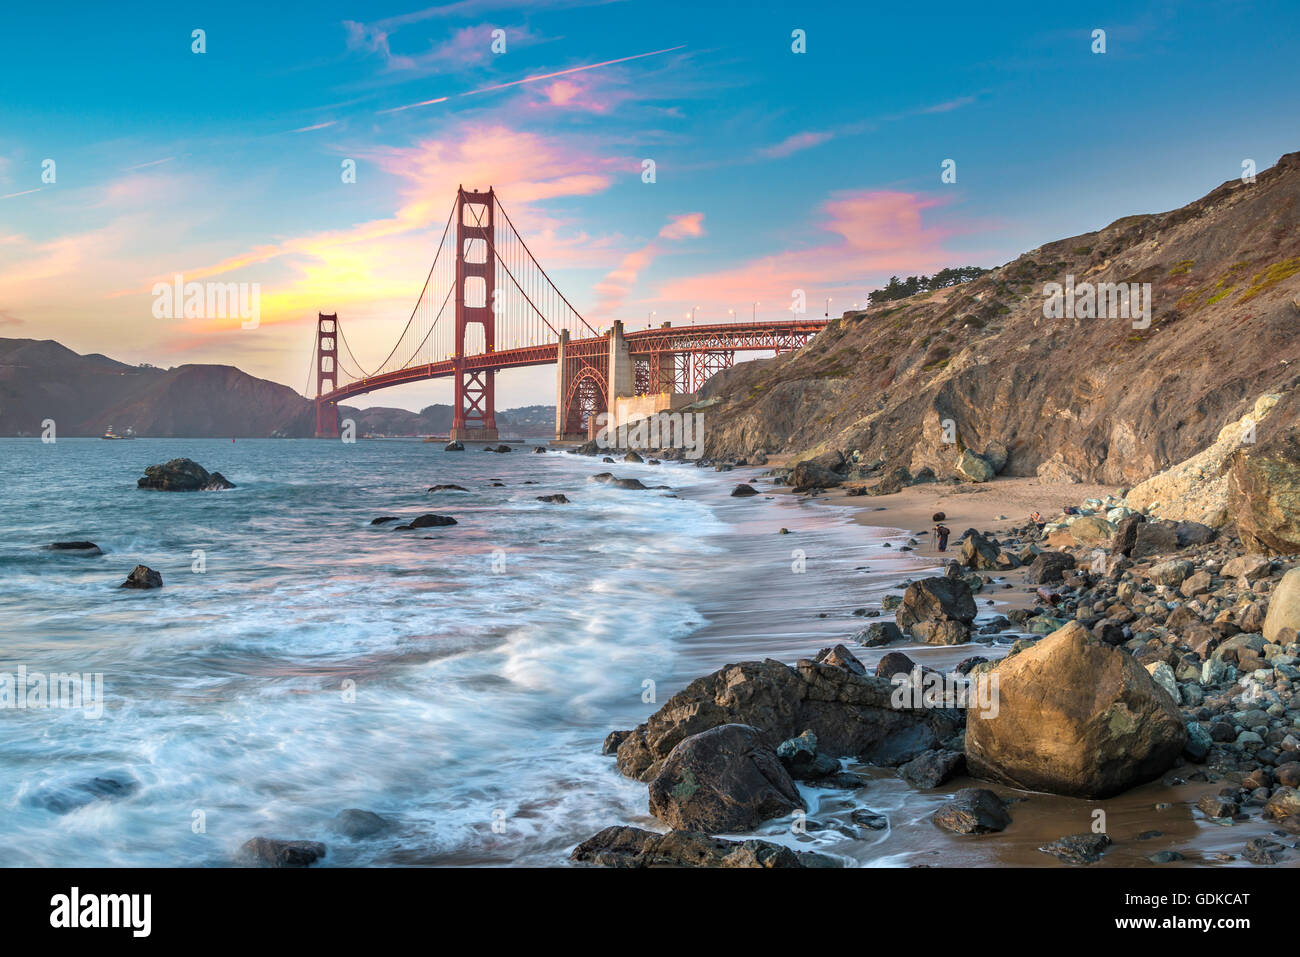 Golden Gate Bridge, evening light, Marshall's Beach, rocky coast, San Francisco, USA - Stock Image